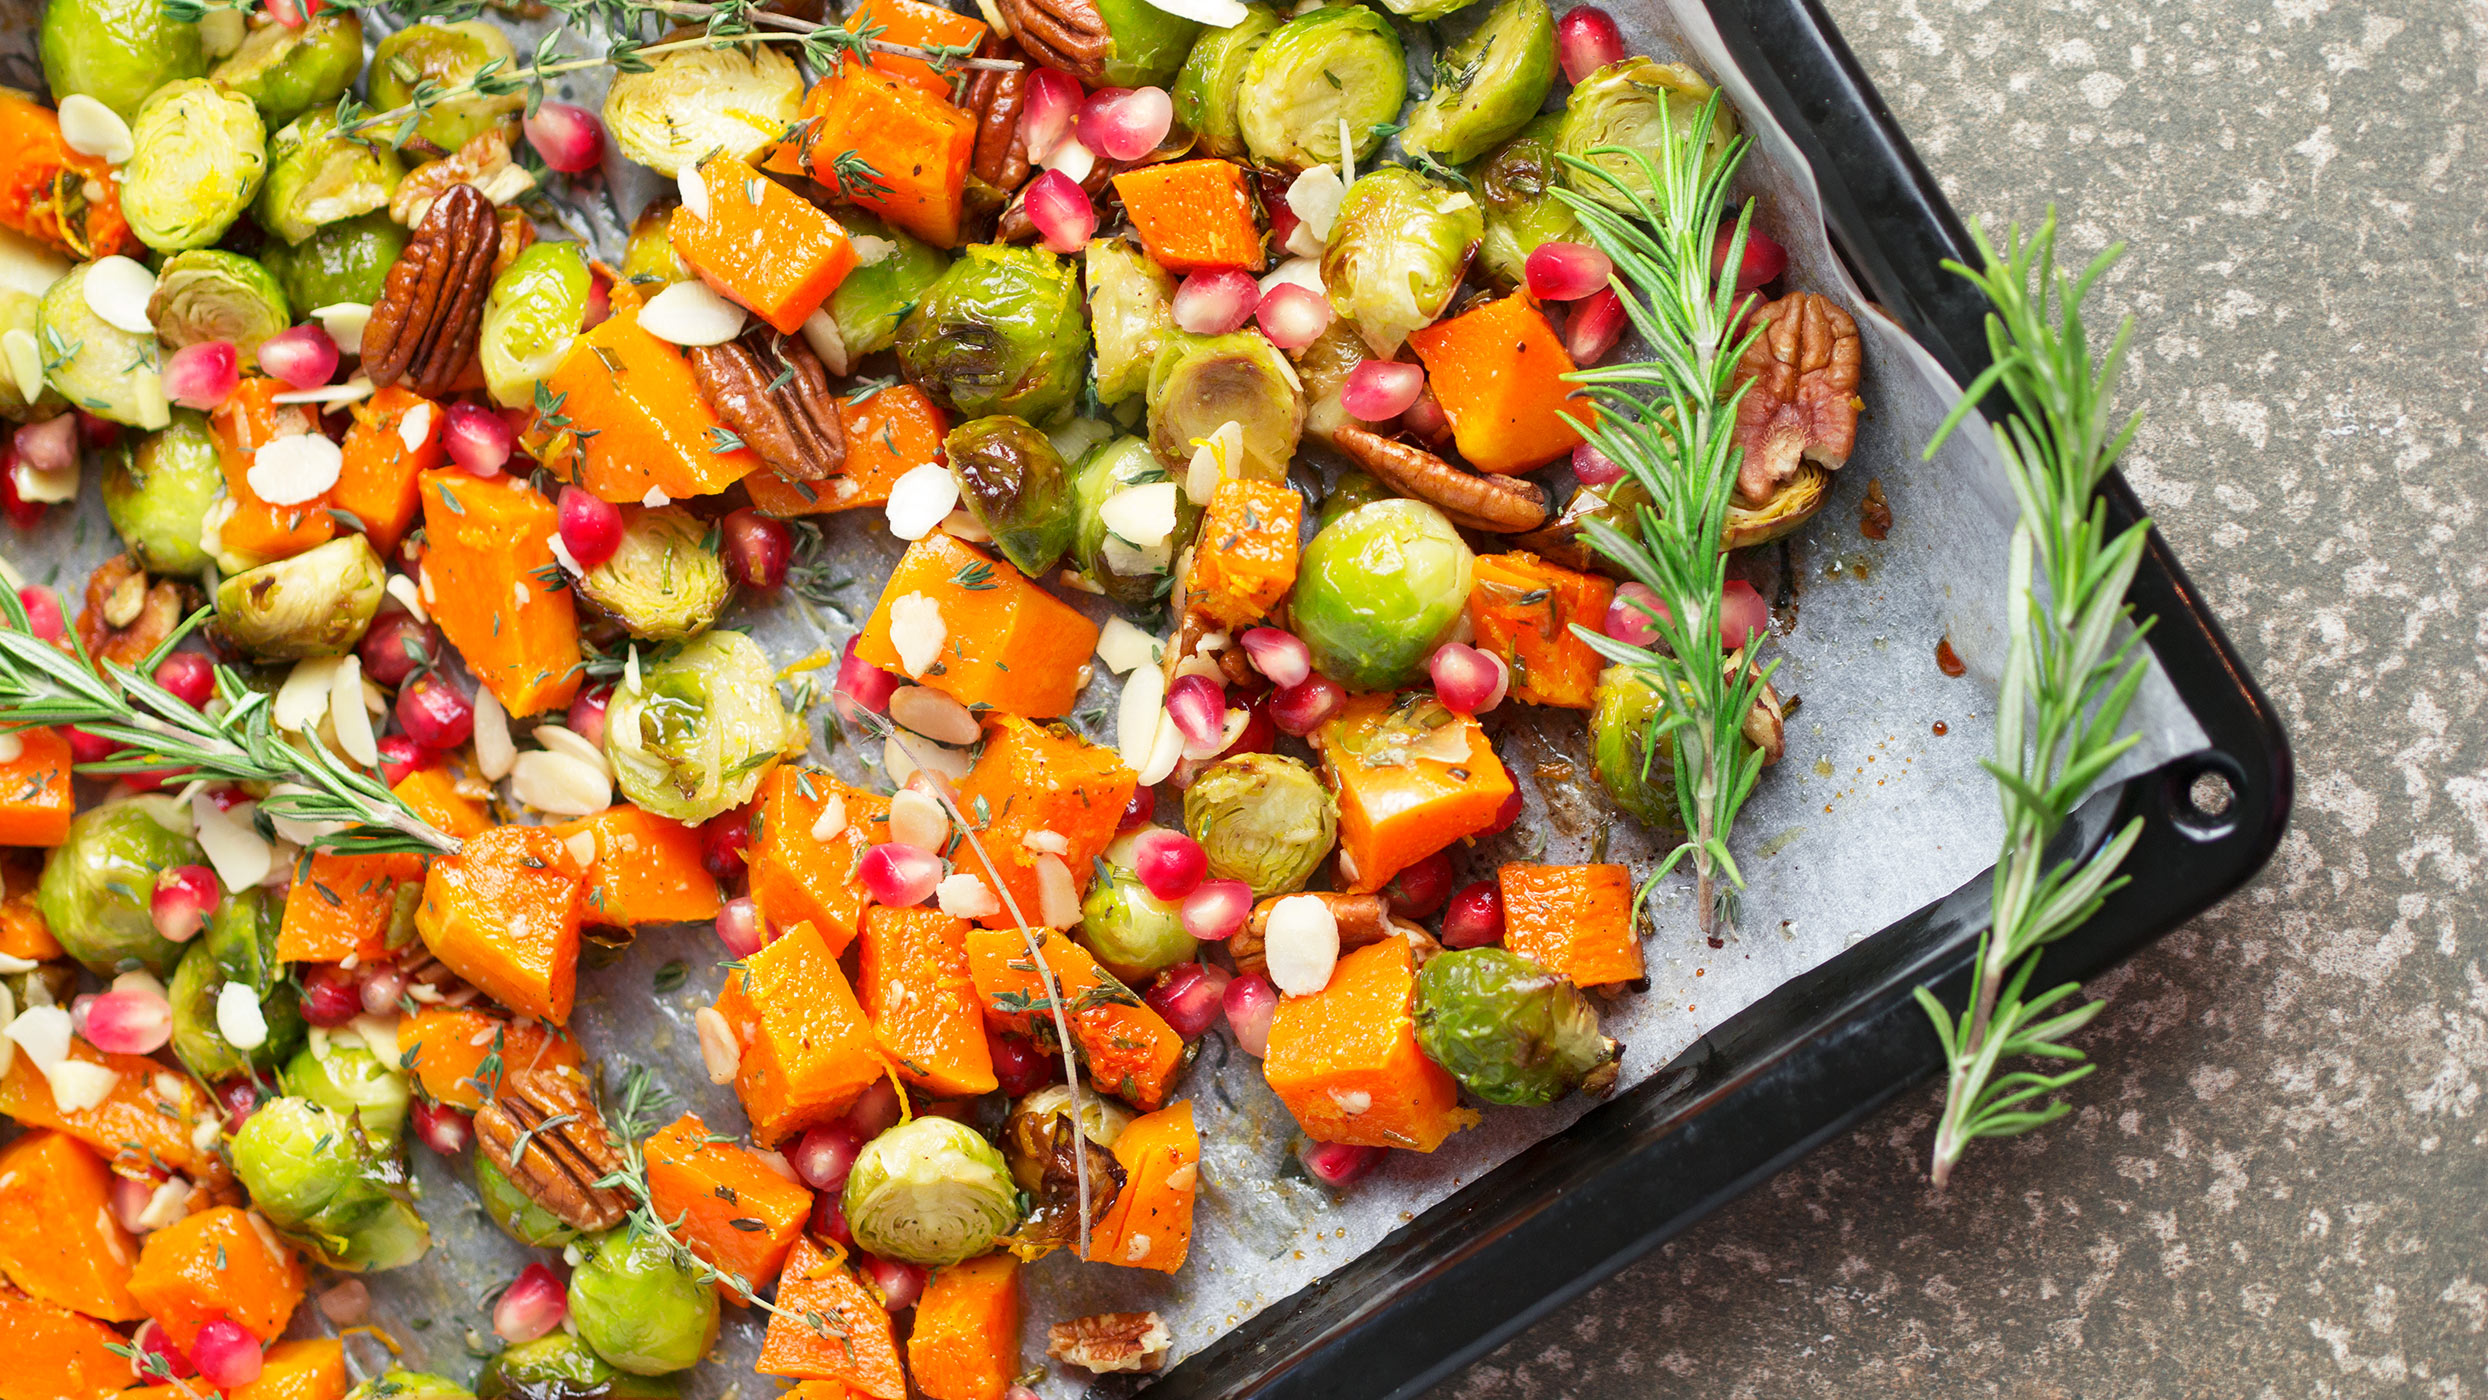 Vegan Christmas recipe: Festive roasted butternut squash and Brussels sprouts